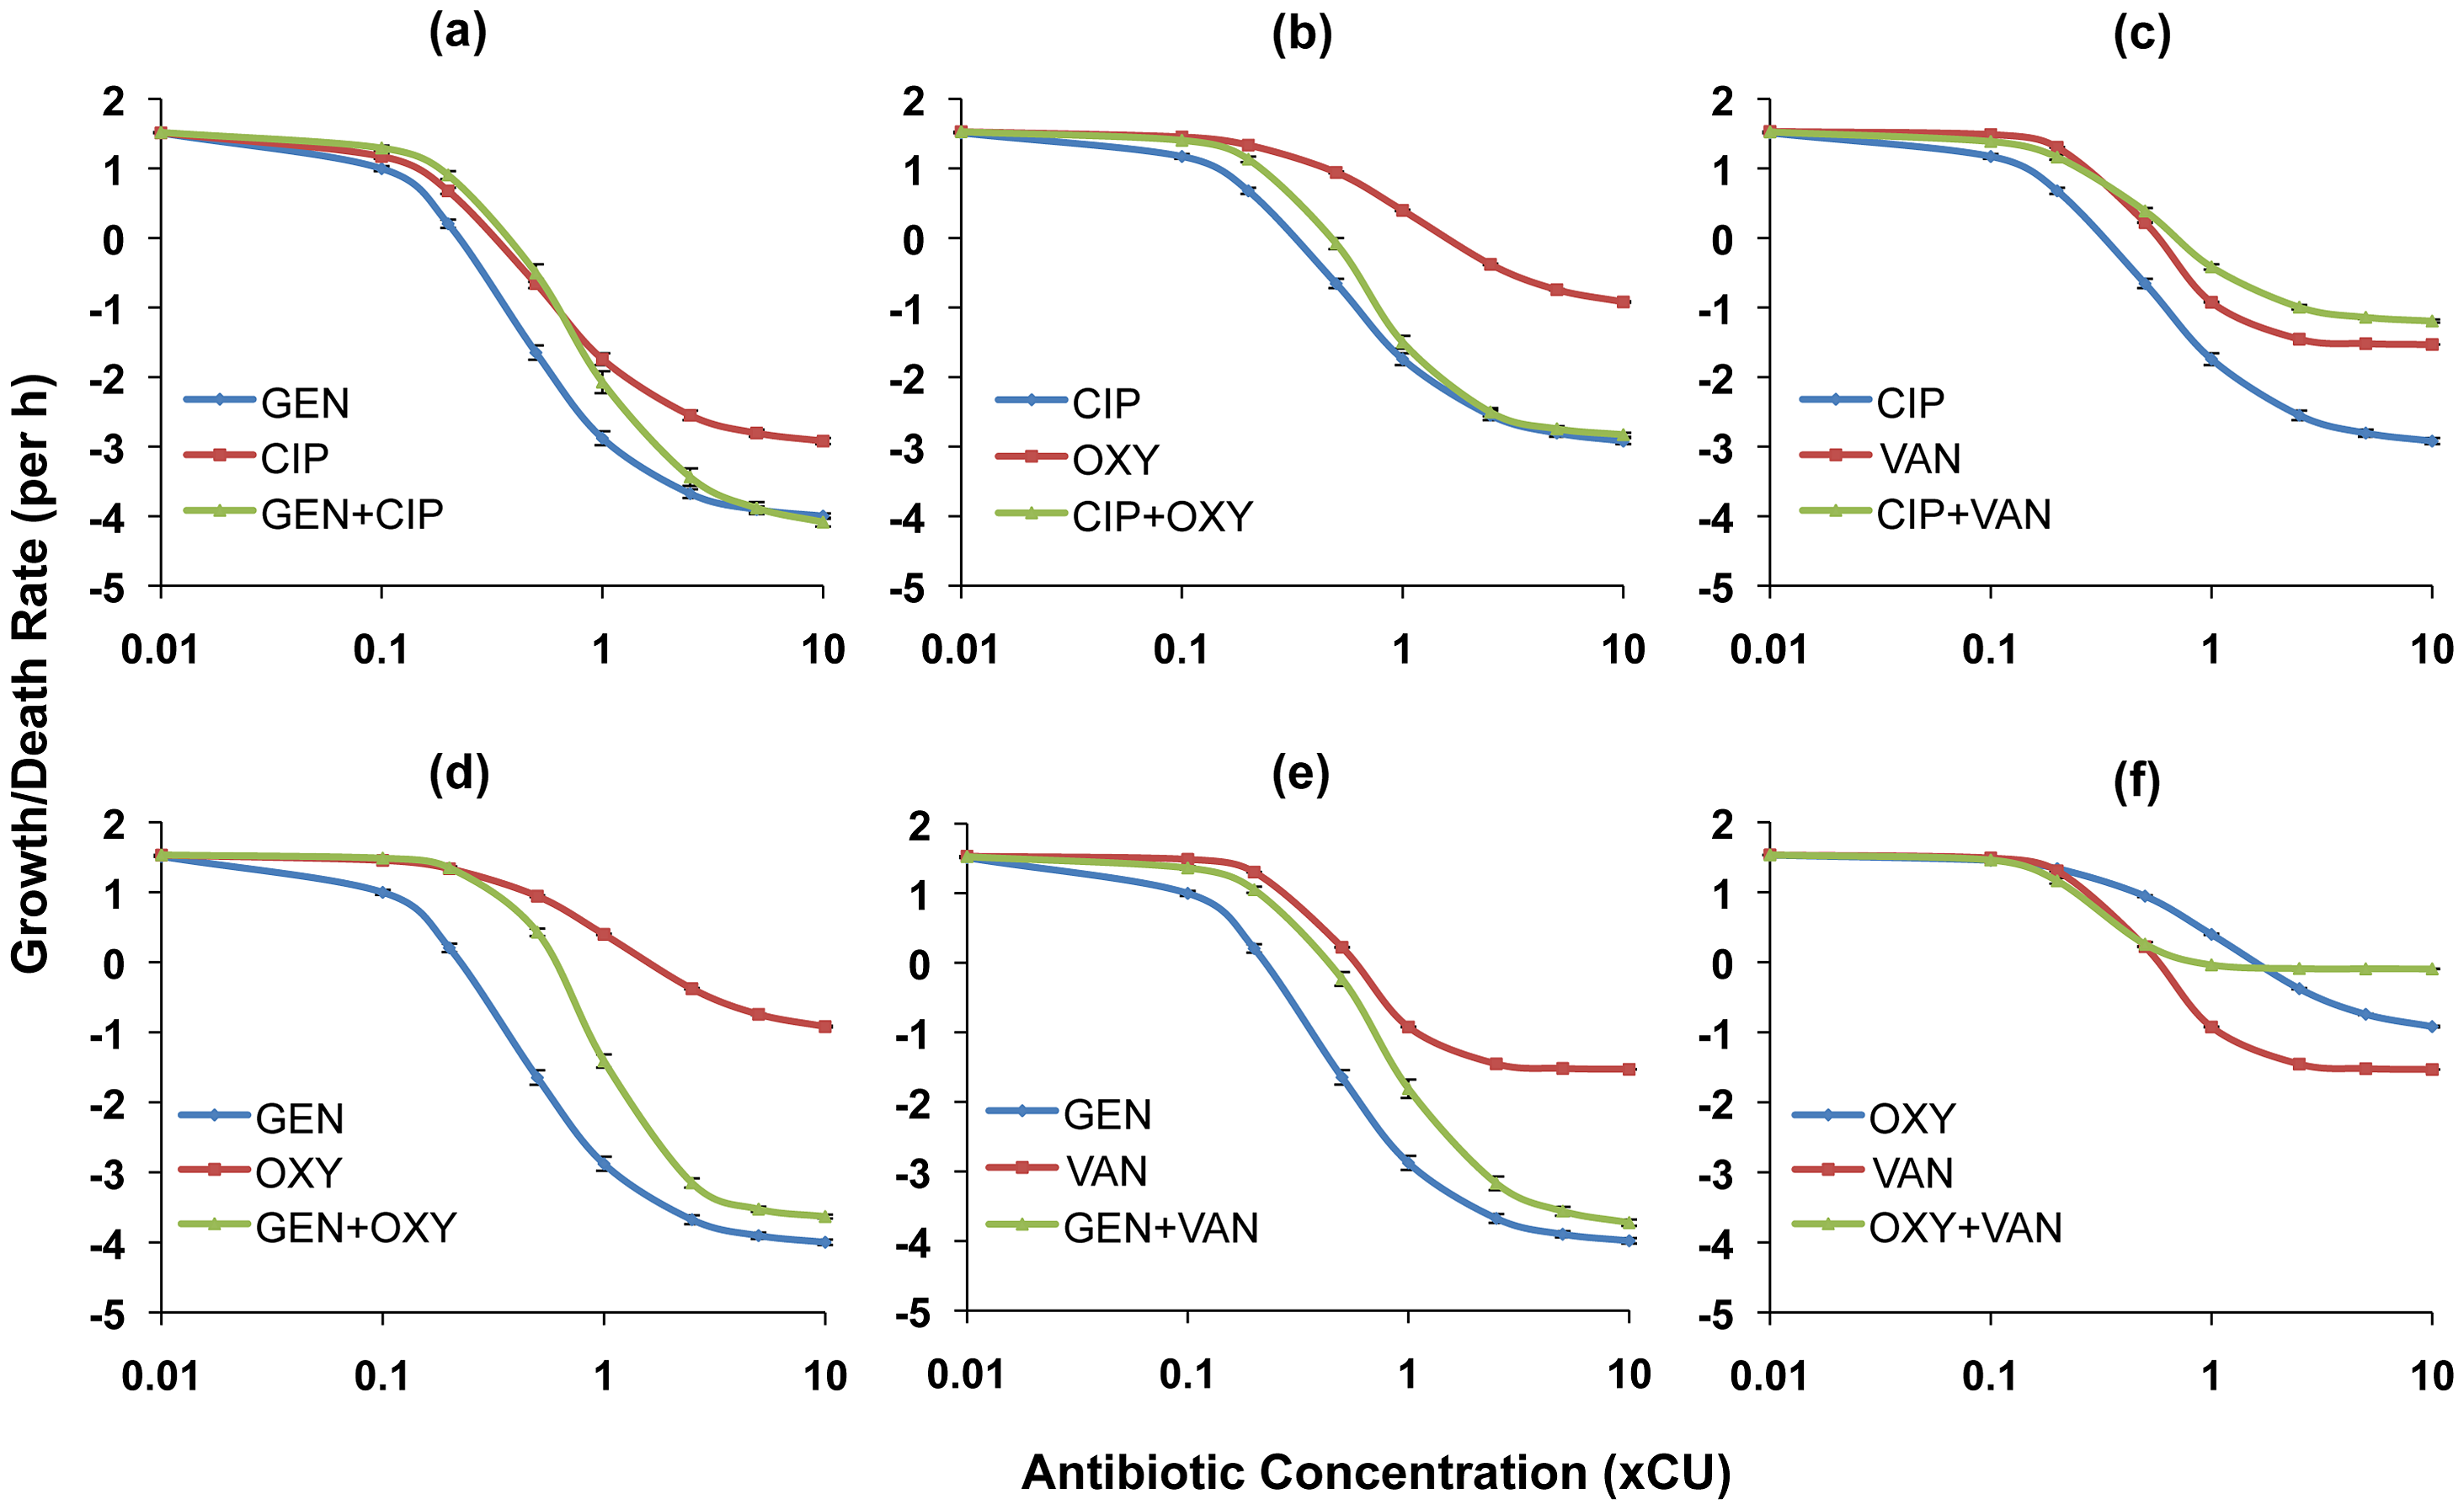 Hill functions for two-drug combinations and the constituent individual antibiotics (<i>S. aureus</i>).